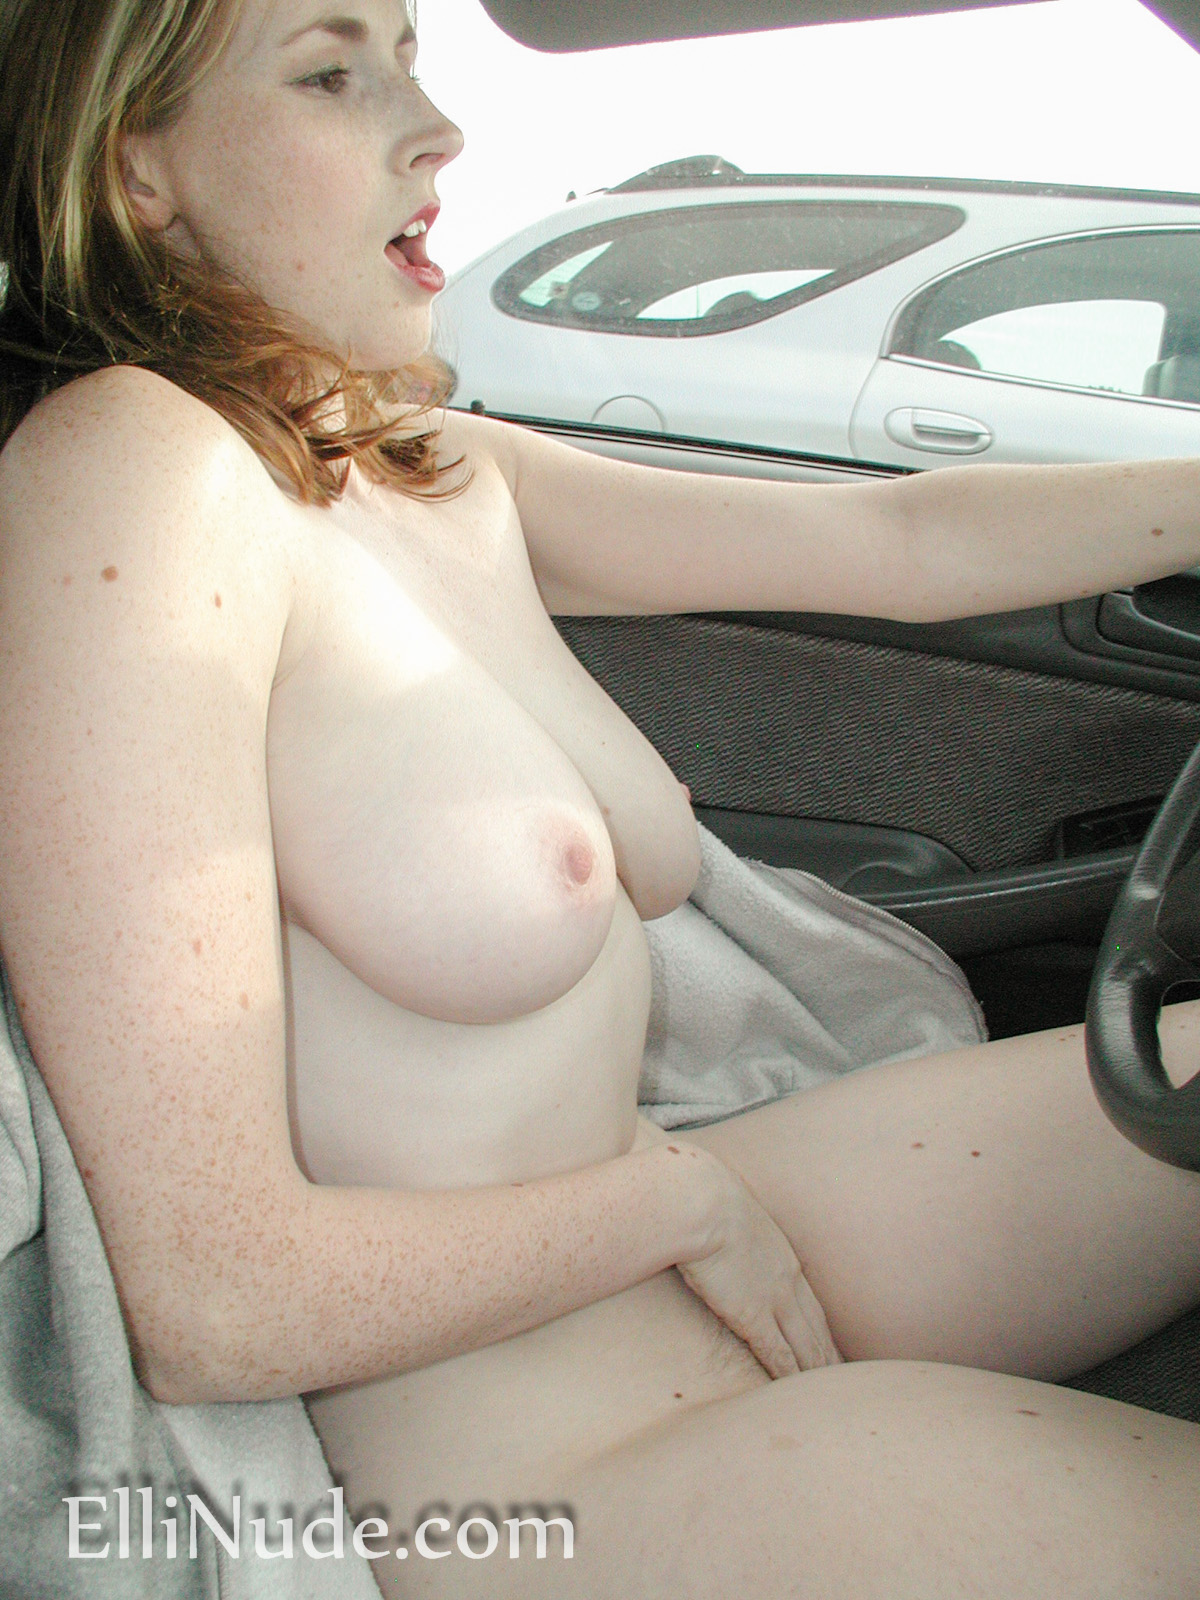 Babes nude driving pics, free cumshot picture galleries